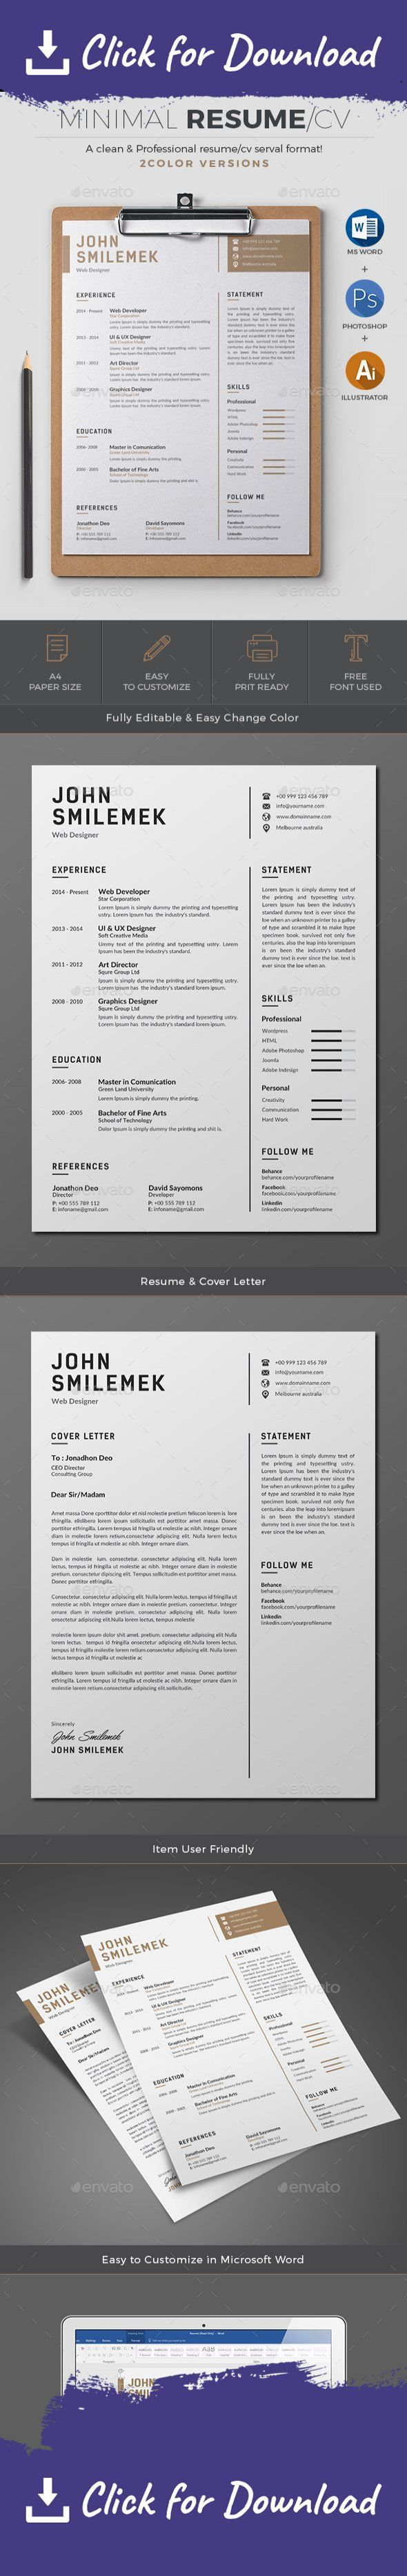 2 piece resume a4 black resume bright career